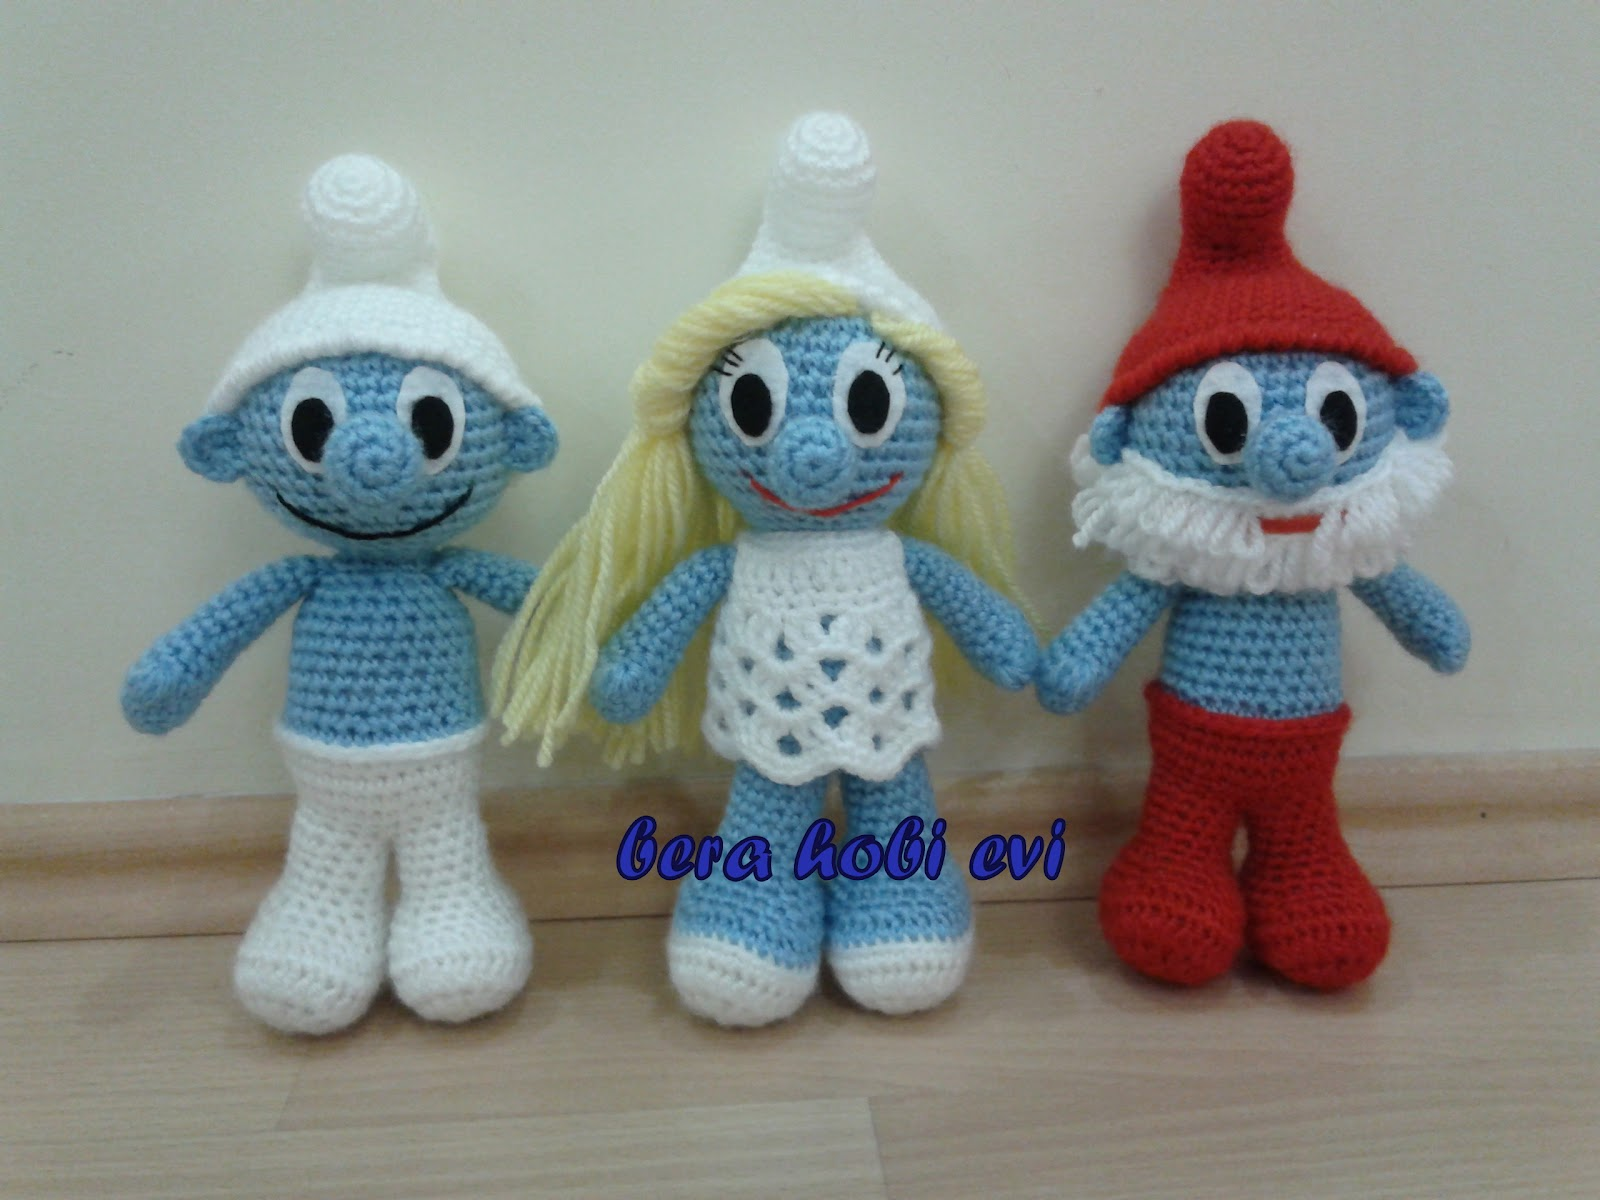 How To Learn To Crochet : Learn How to Crochet Basic Beginner Amigurumi Smiley